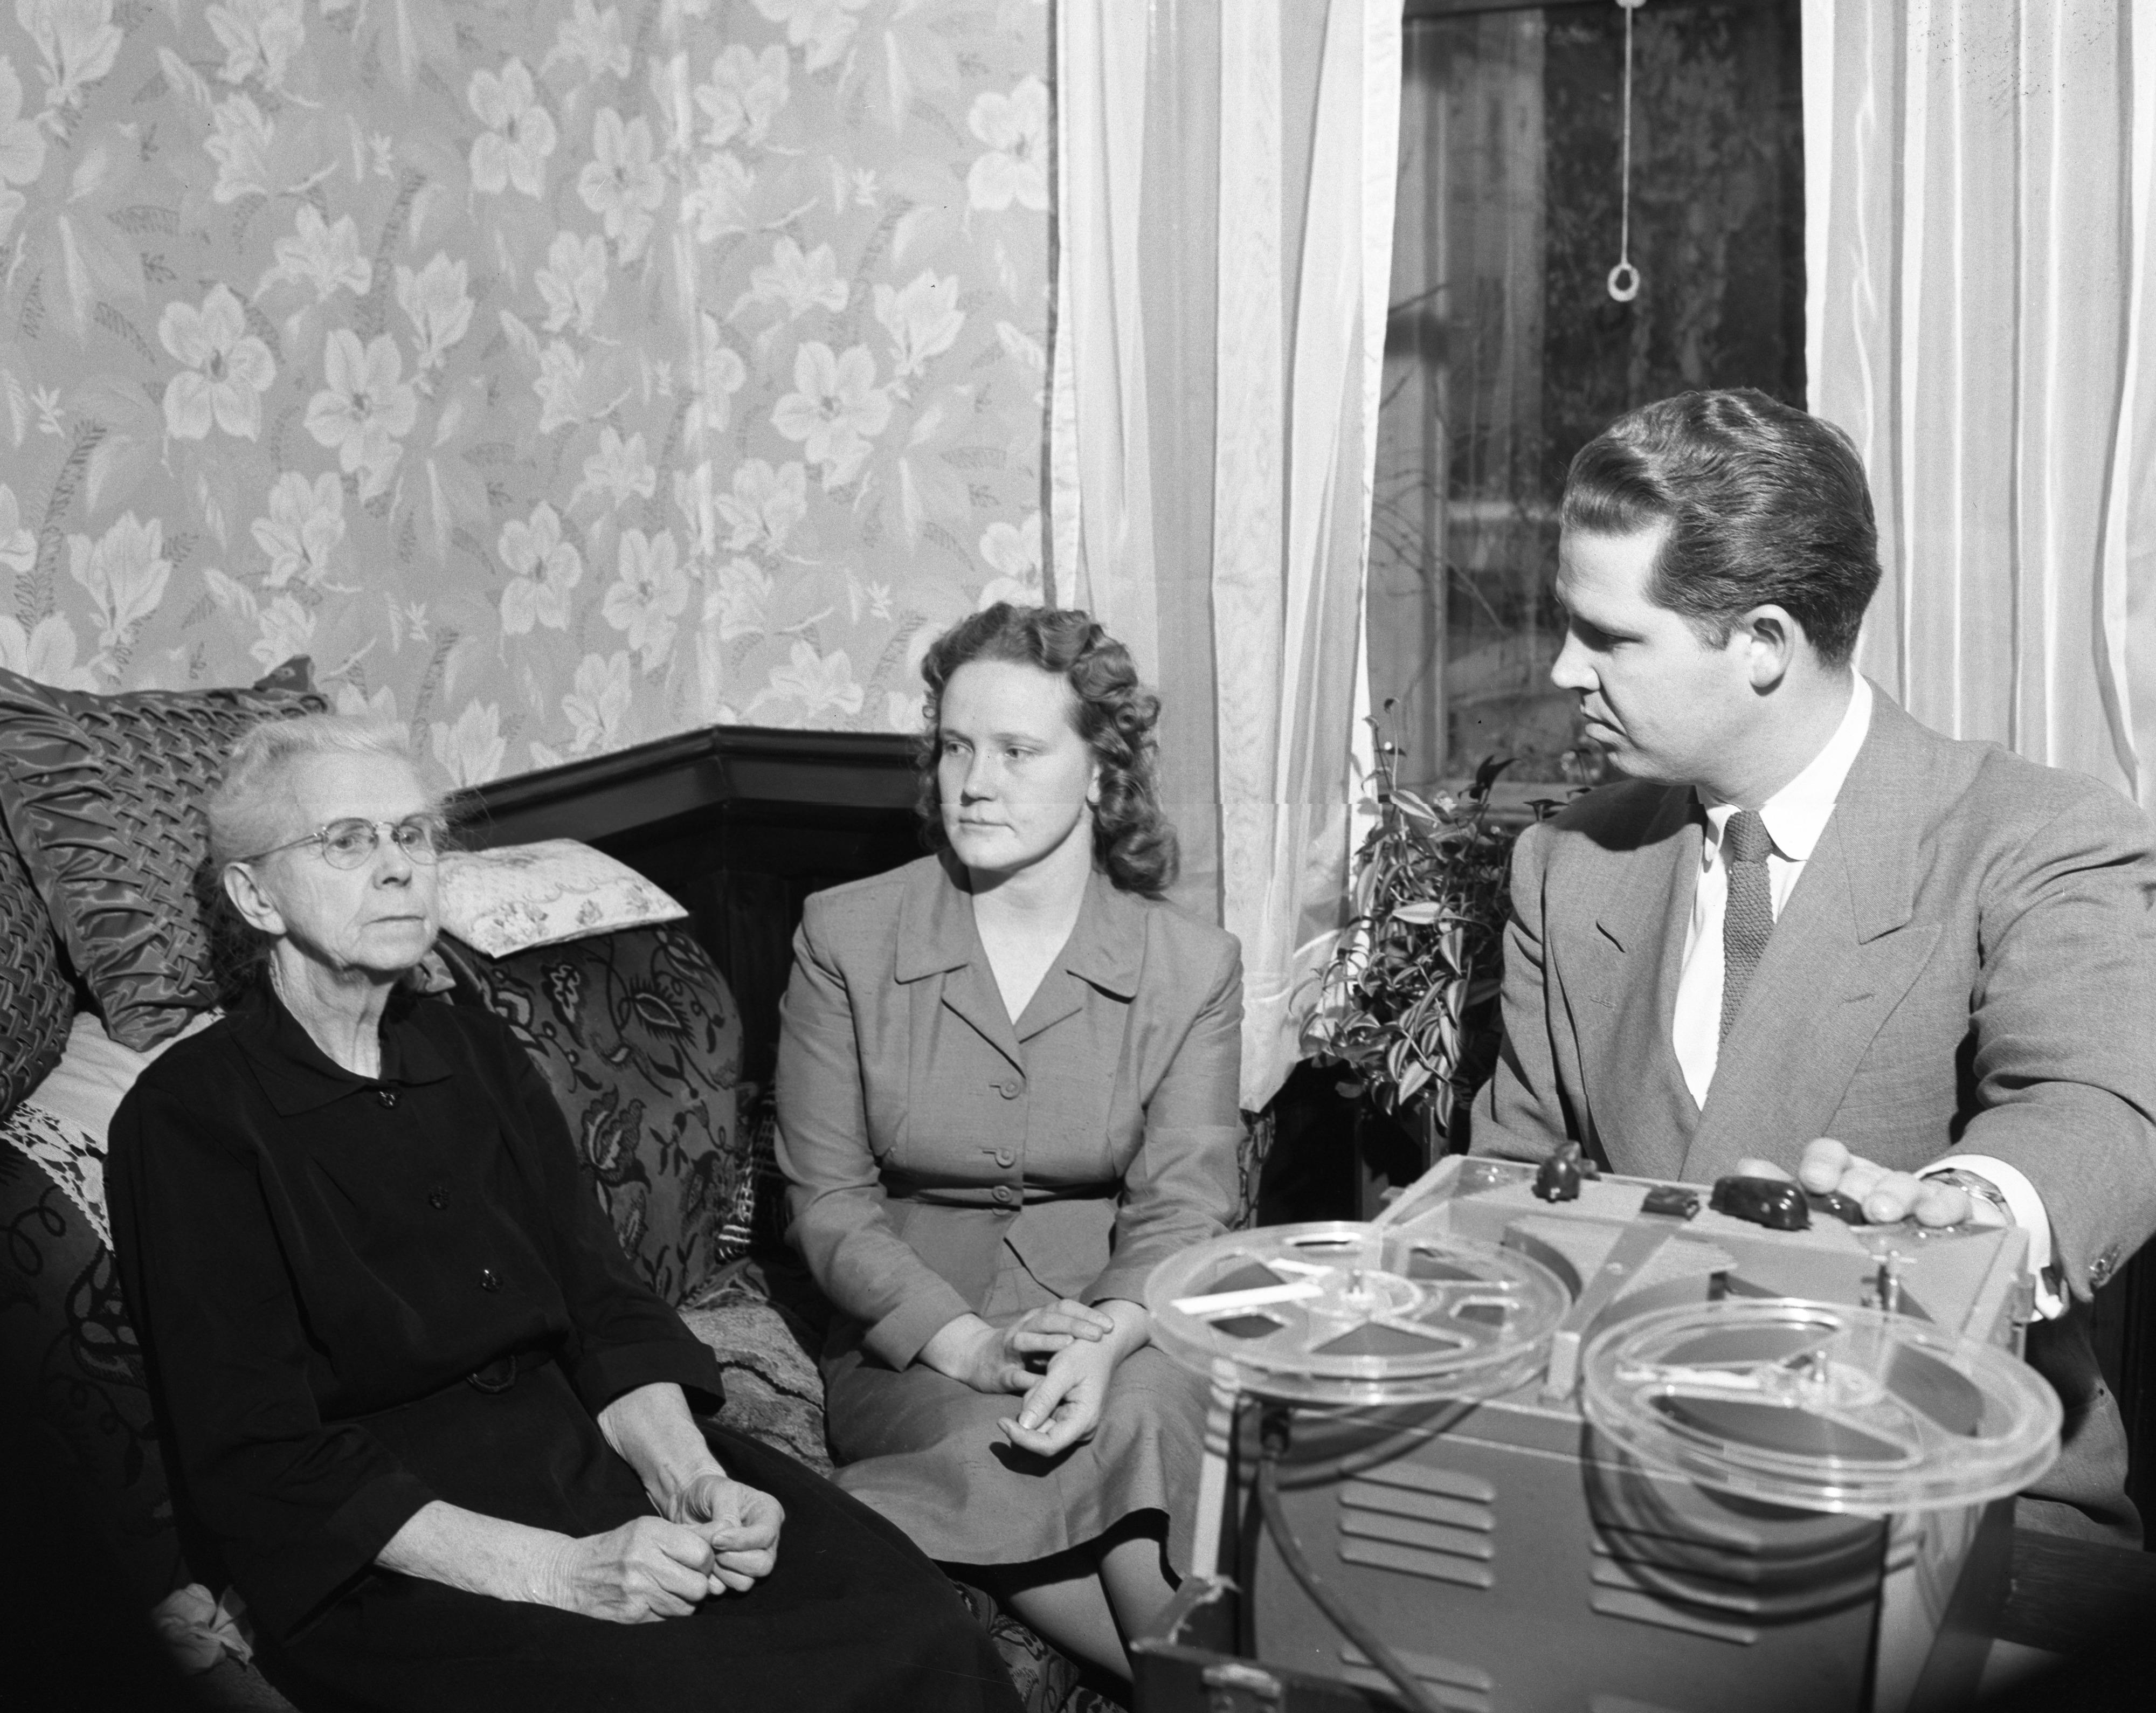 Mrs. Emma Milcer and Mr. and Mrs. Monroe Morford with Tape Recorder of Seventh Day Adventist Sermons, January 1958 image